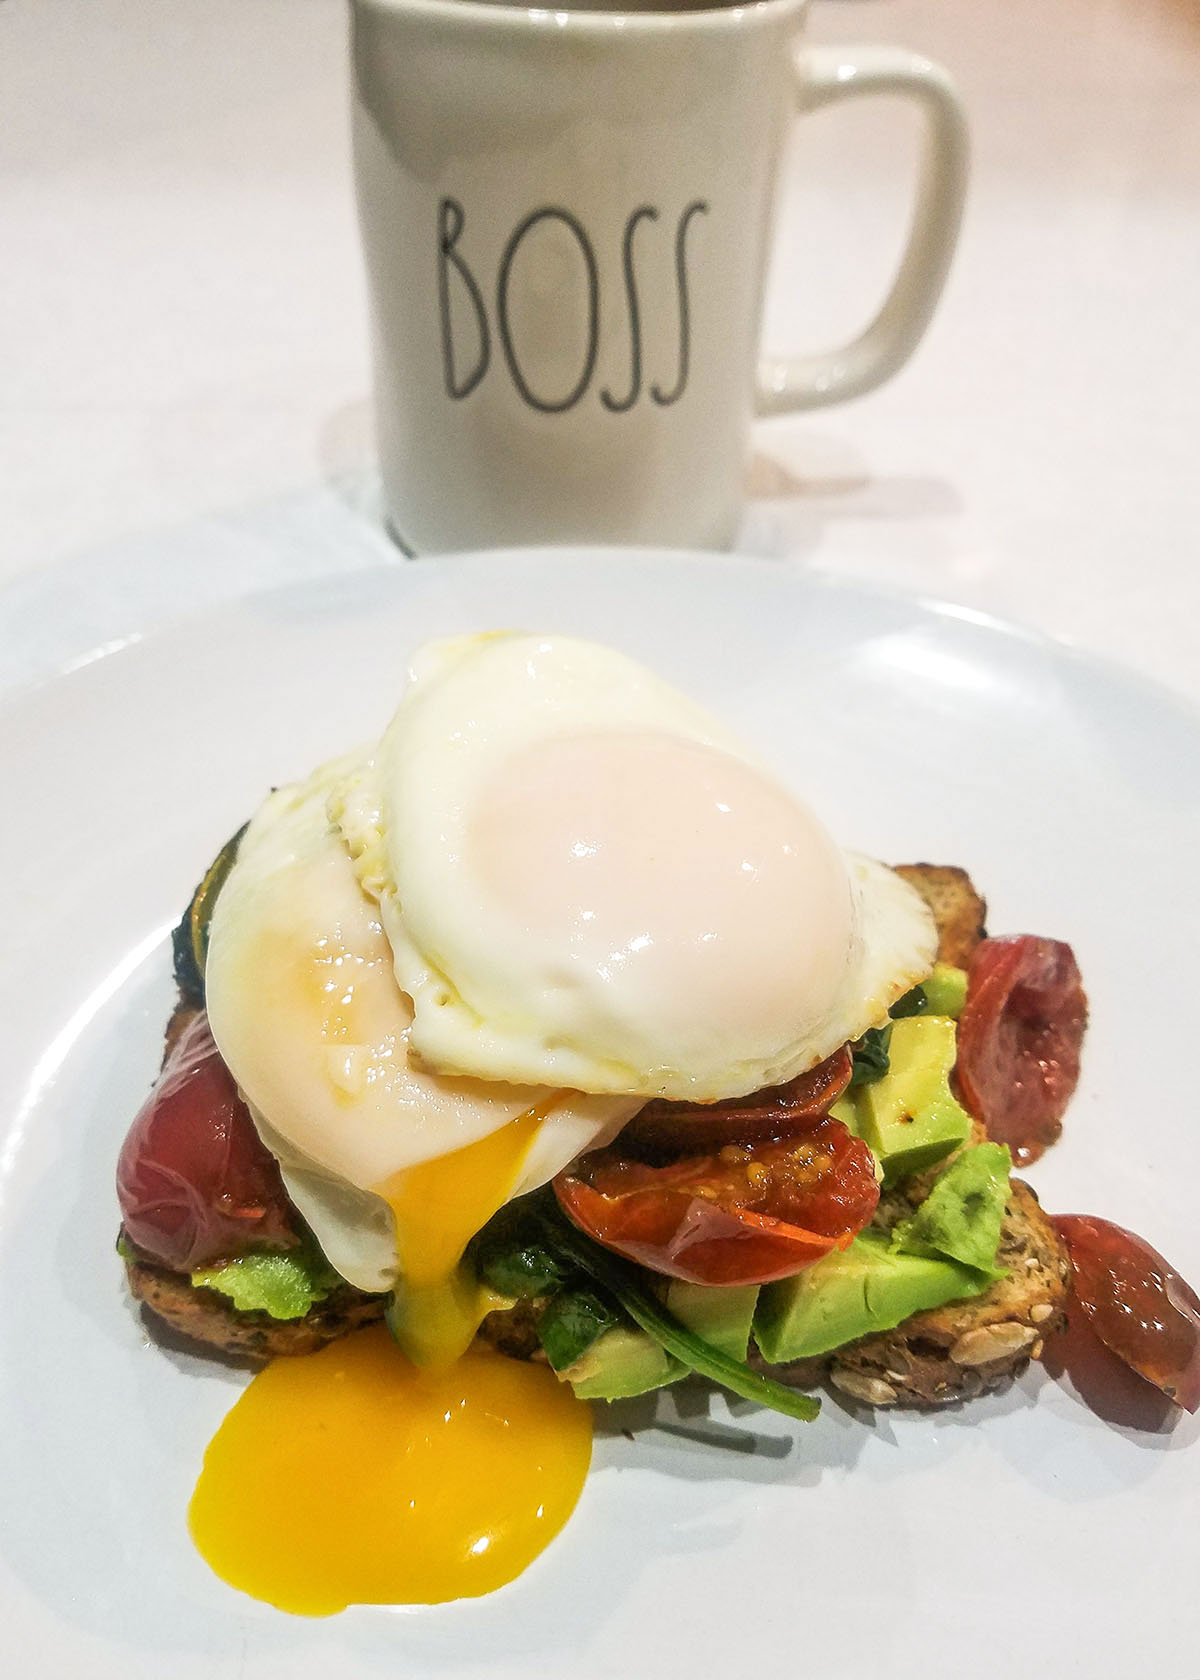 How to cook eggs with runny yolks and cooked egg white